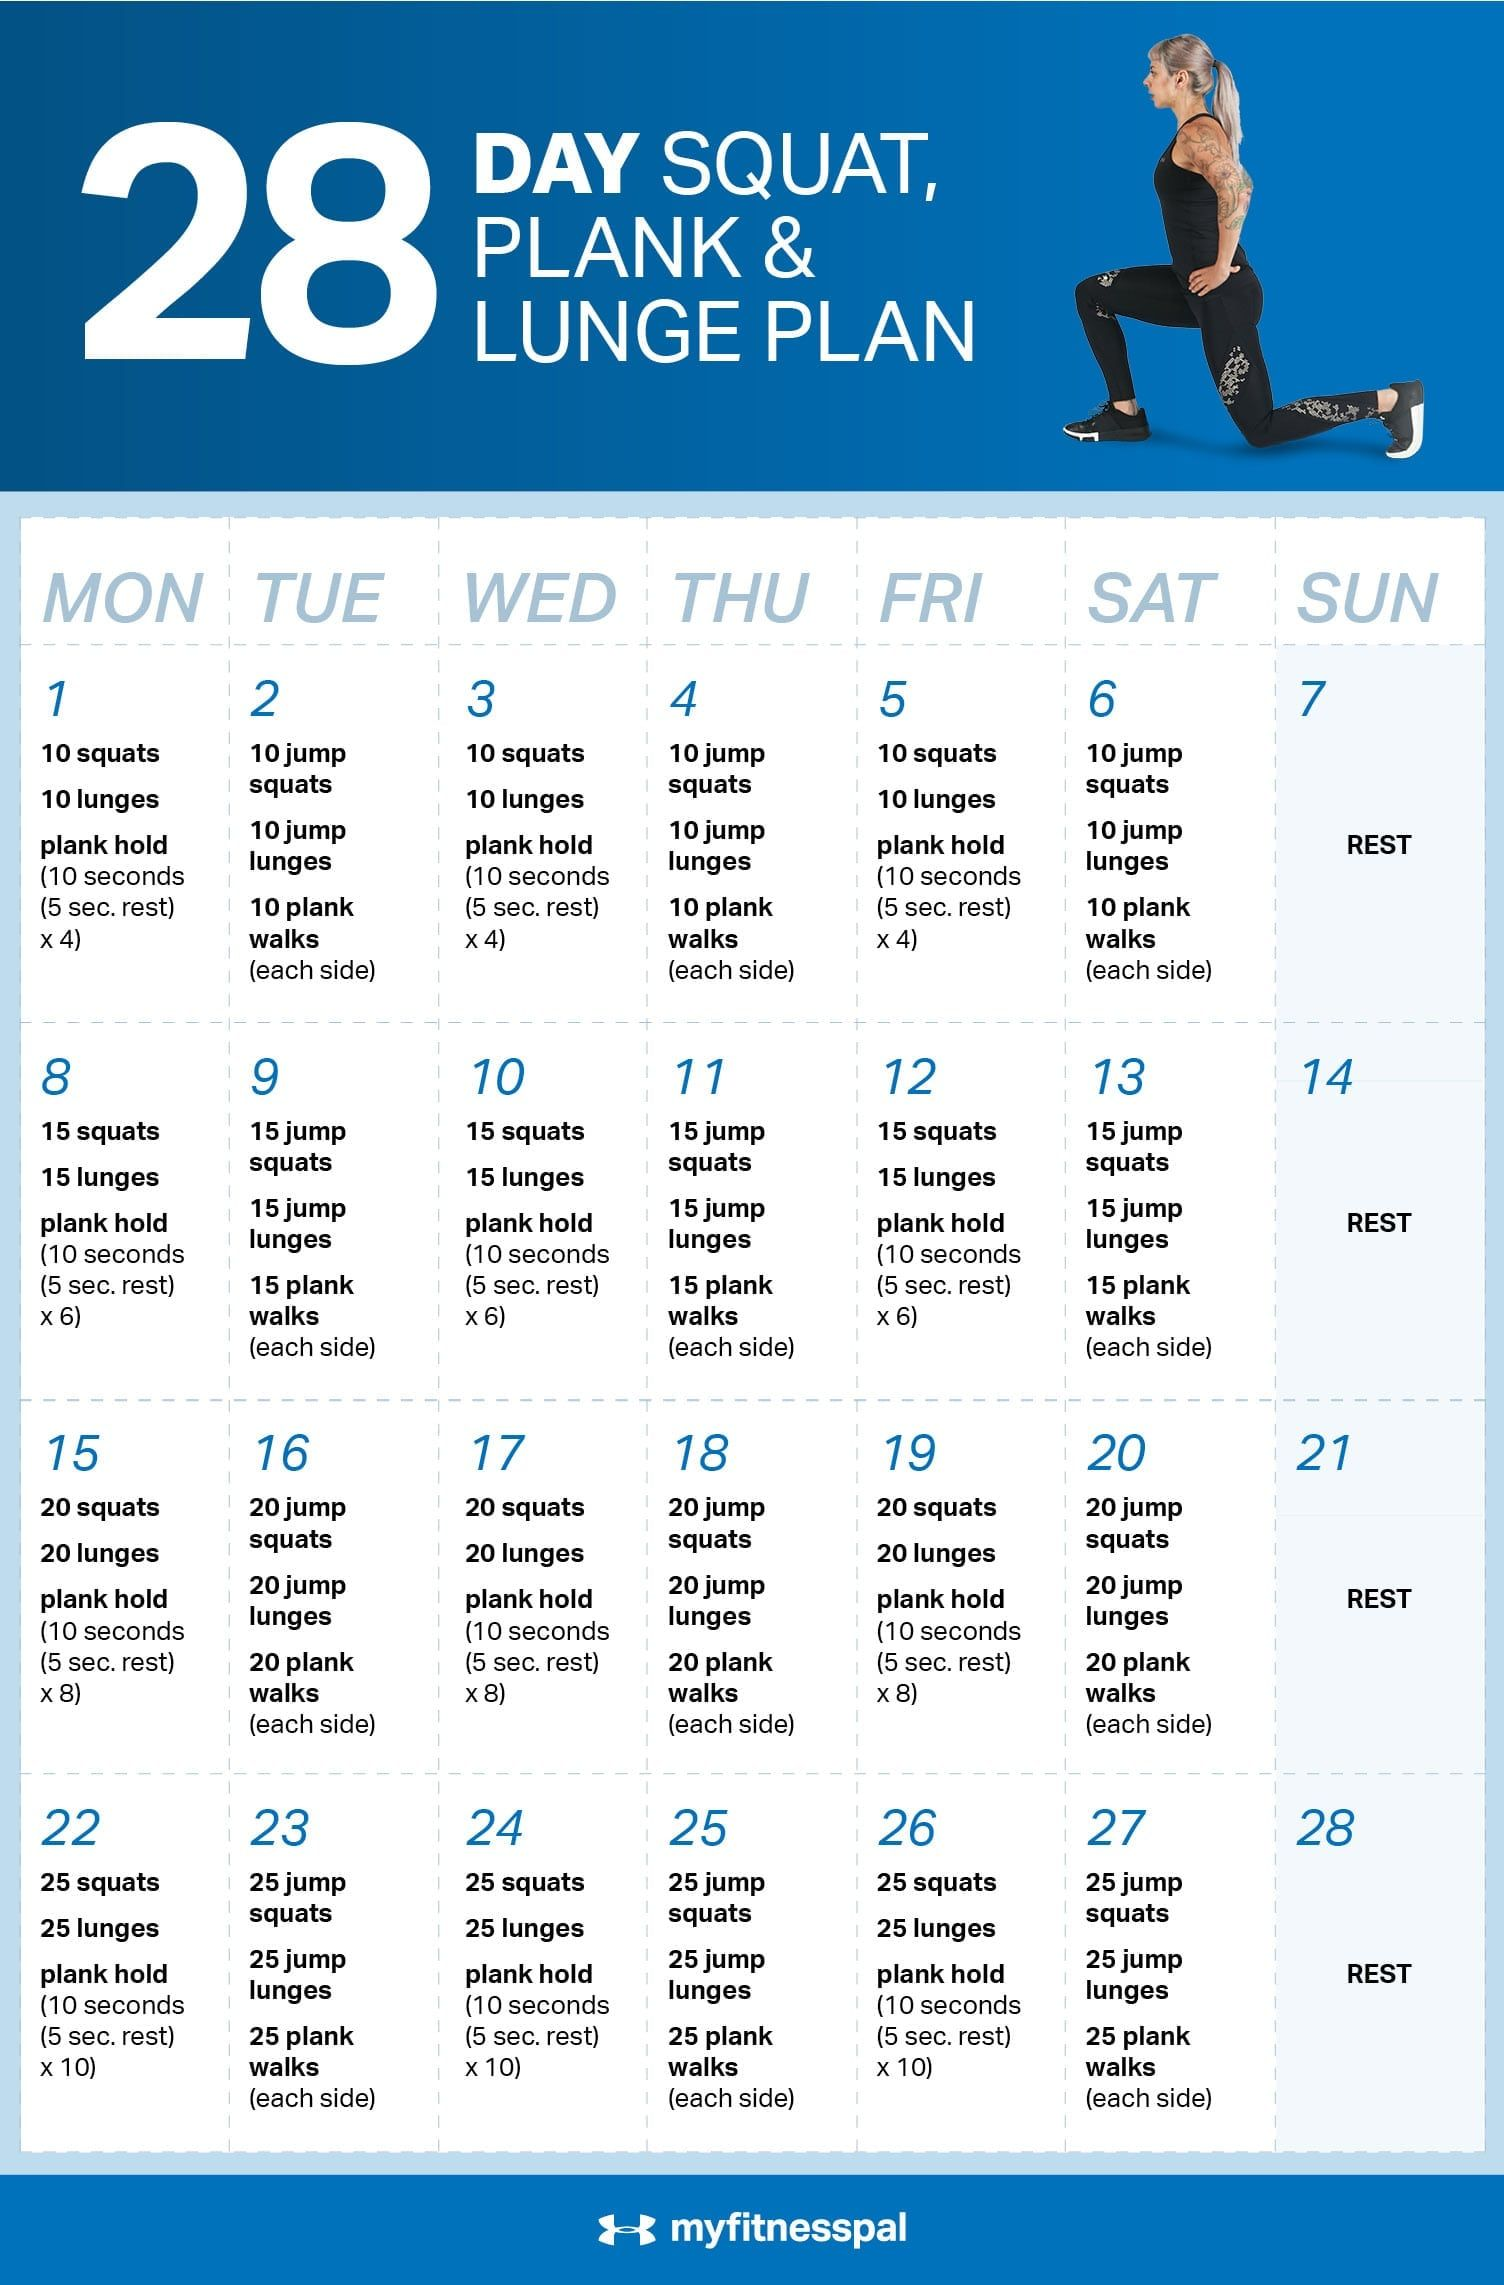 28-Day Squat, Plank & Lunge Plan